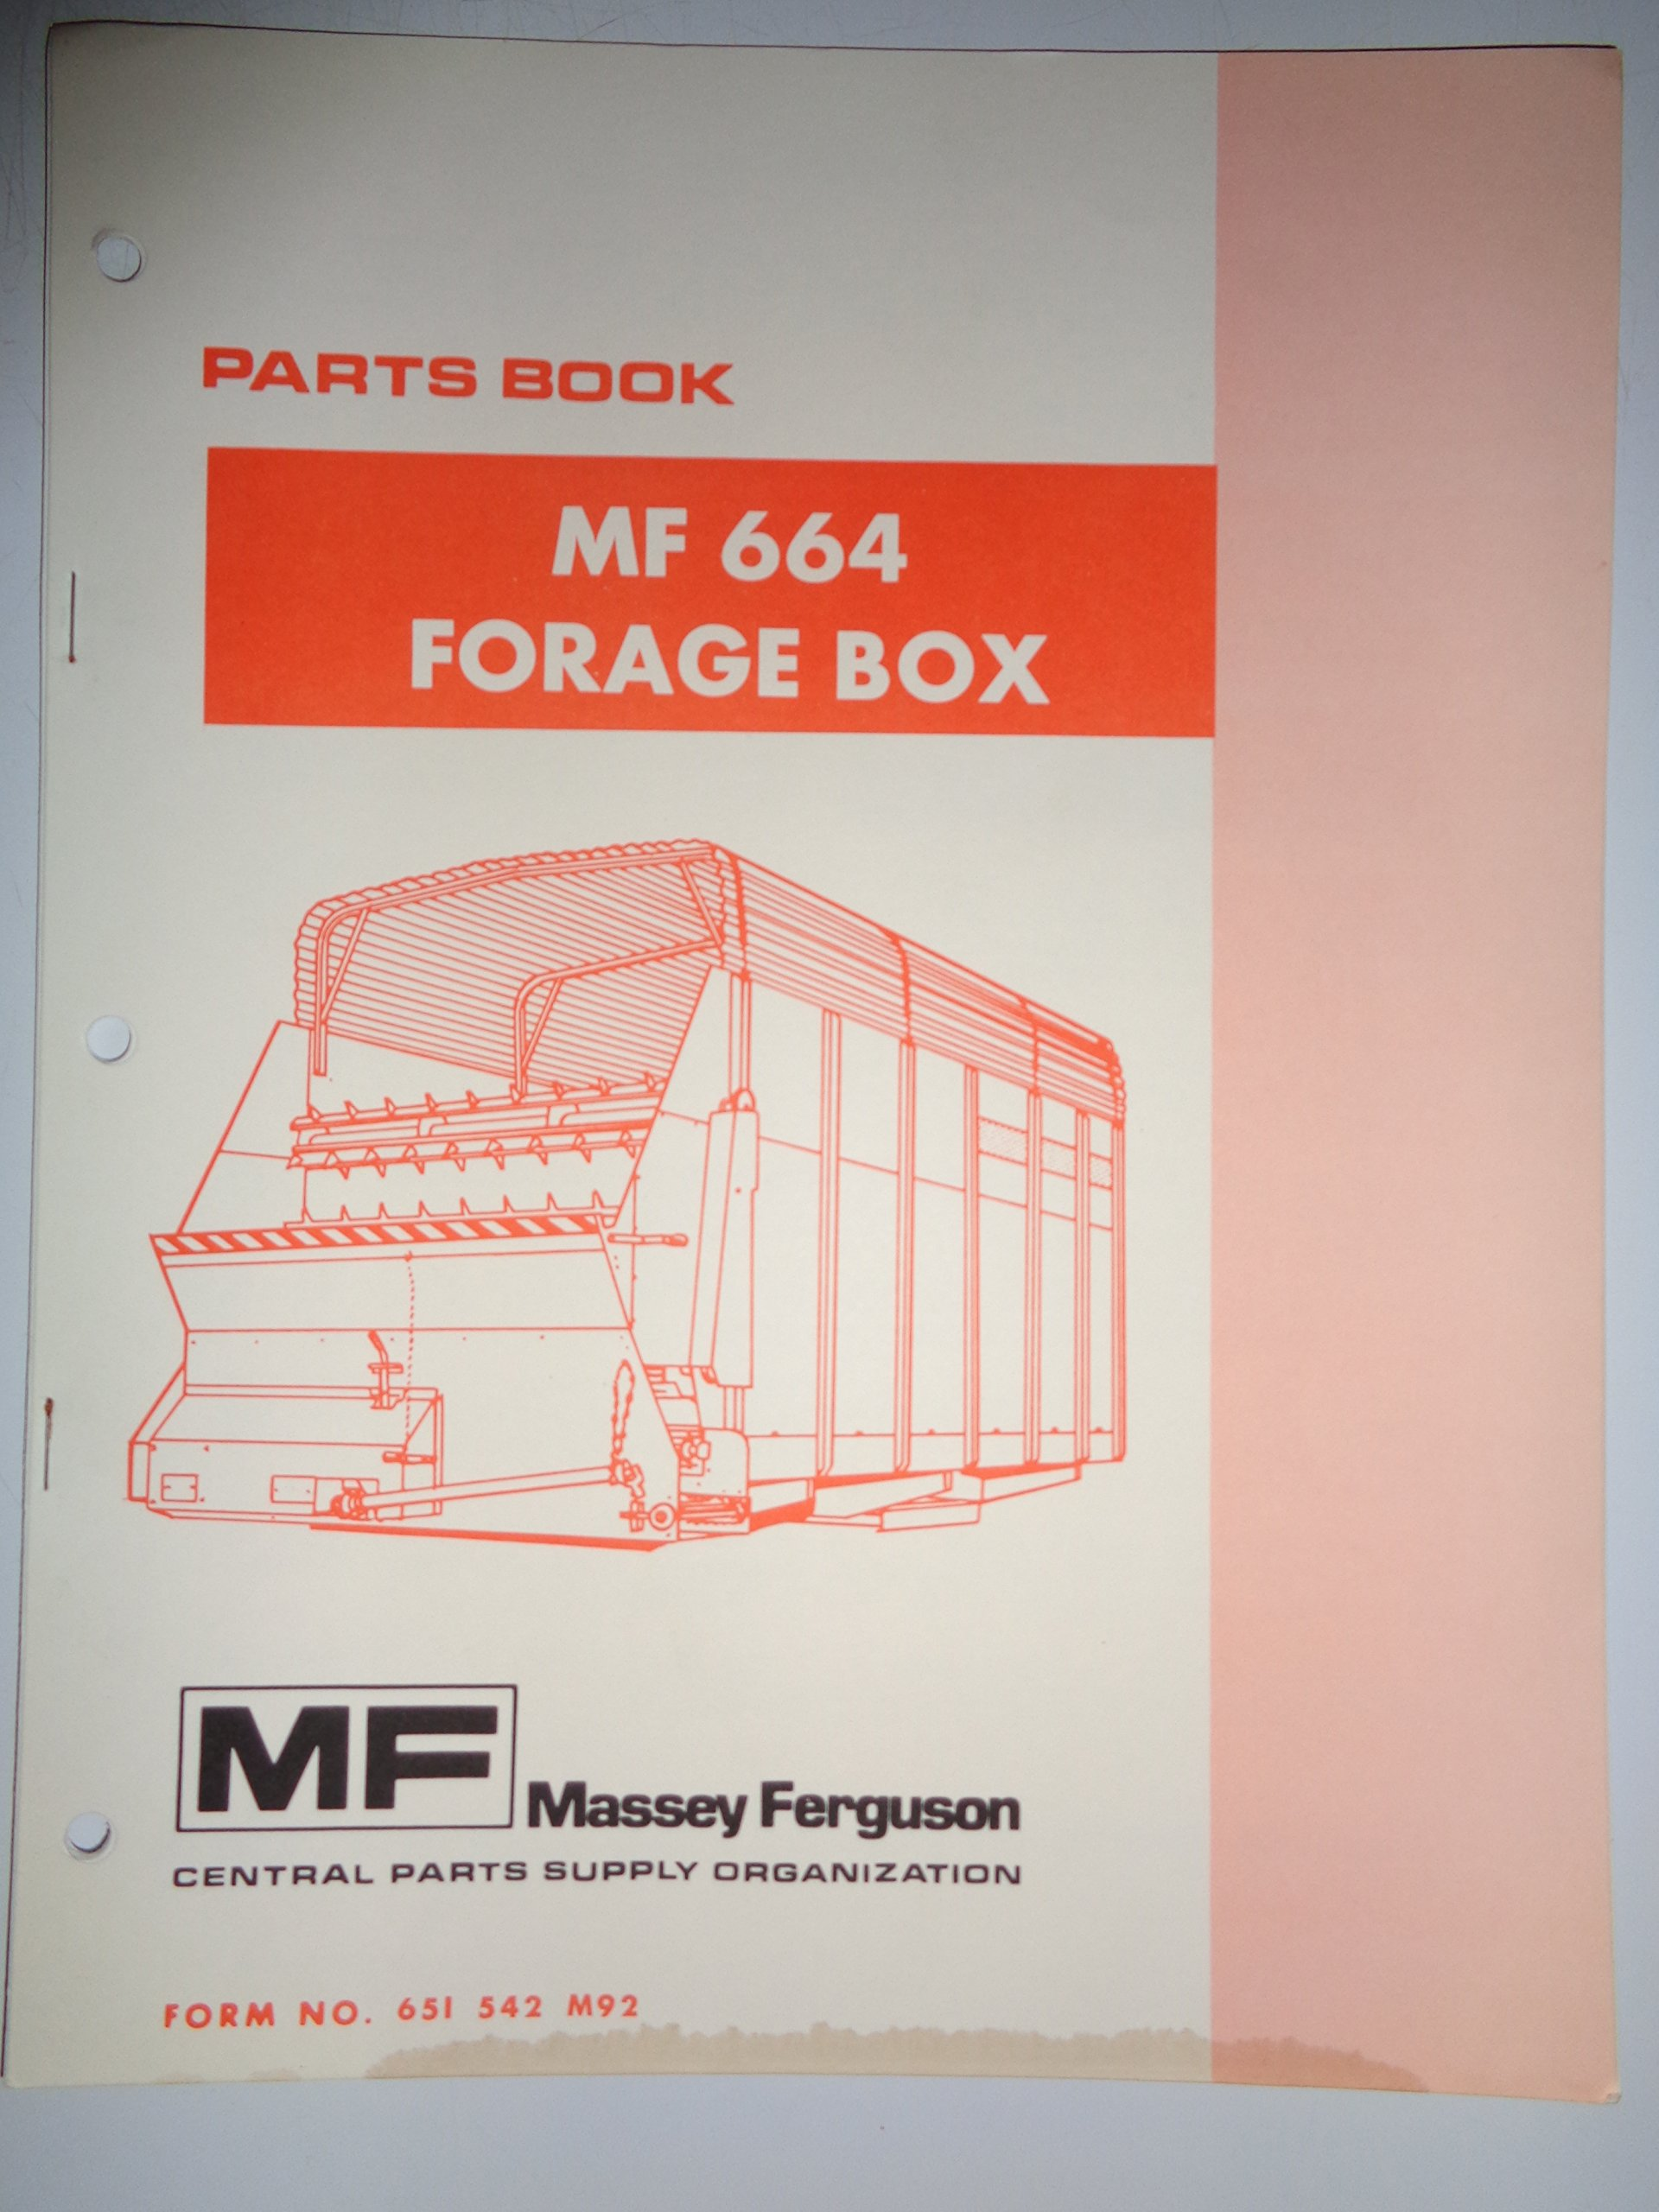 Original Manual Other Ferguson Forager Instruction Book ............................